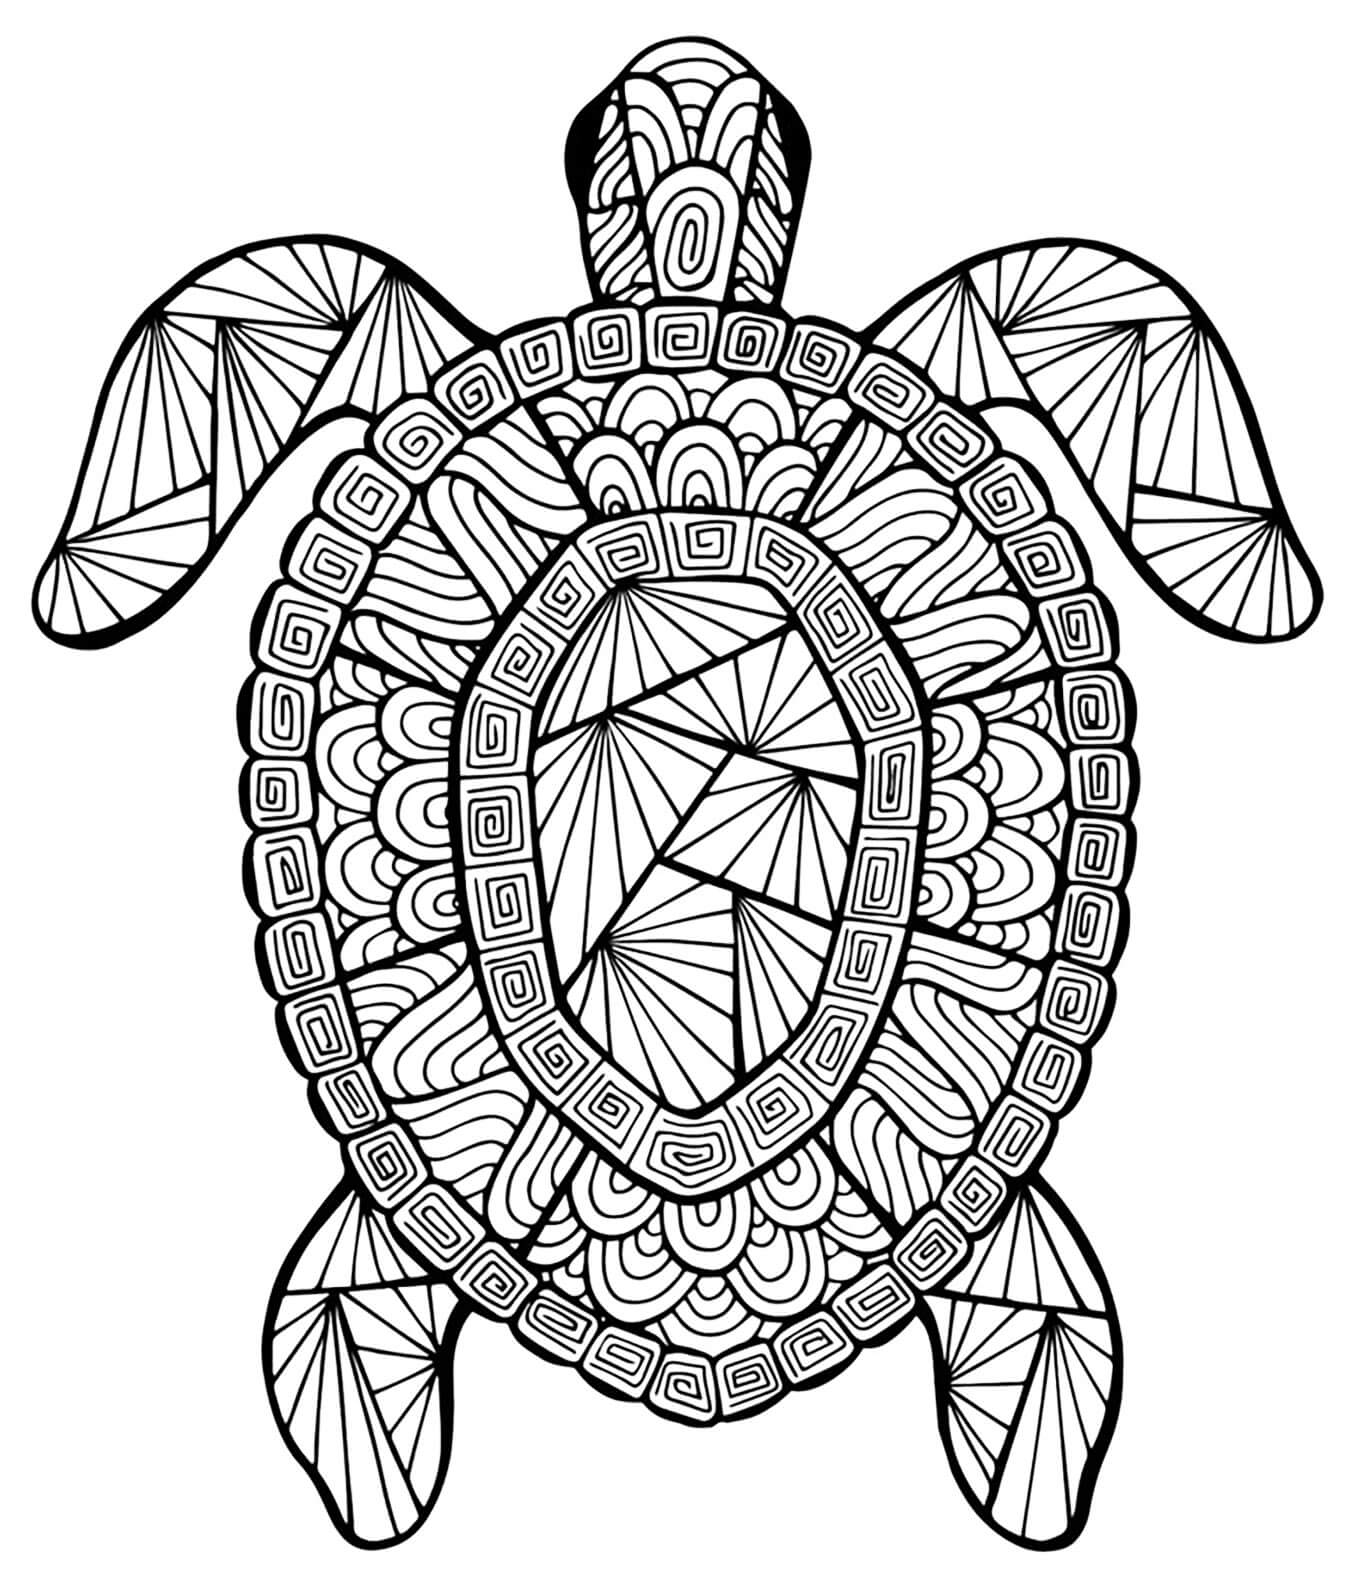 coloring worksheets hard difficult coloring pages for adults free printable coloring worksheets hard